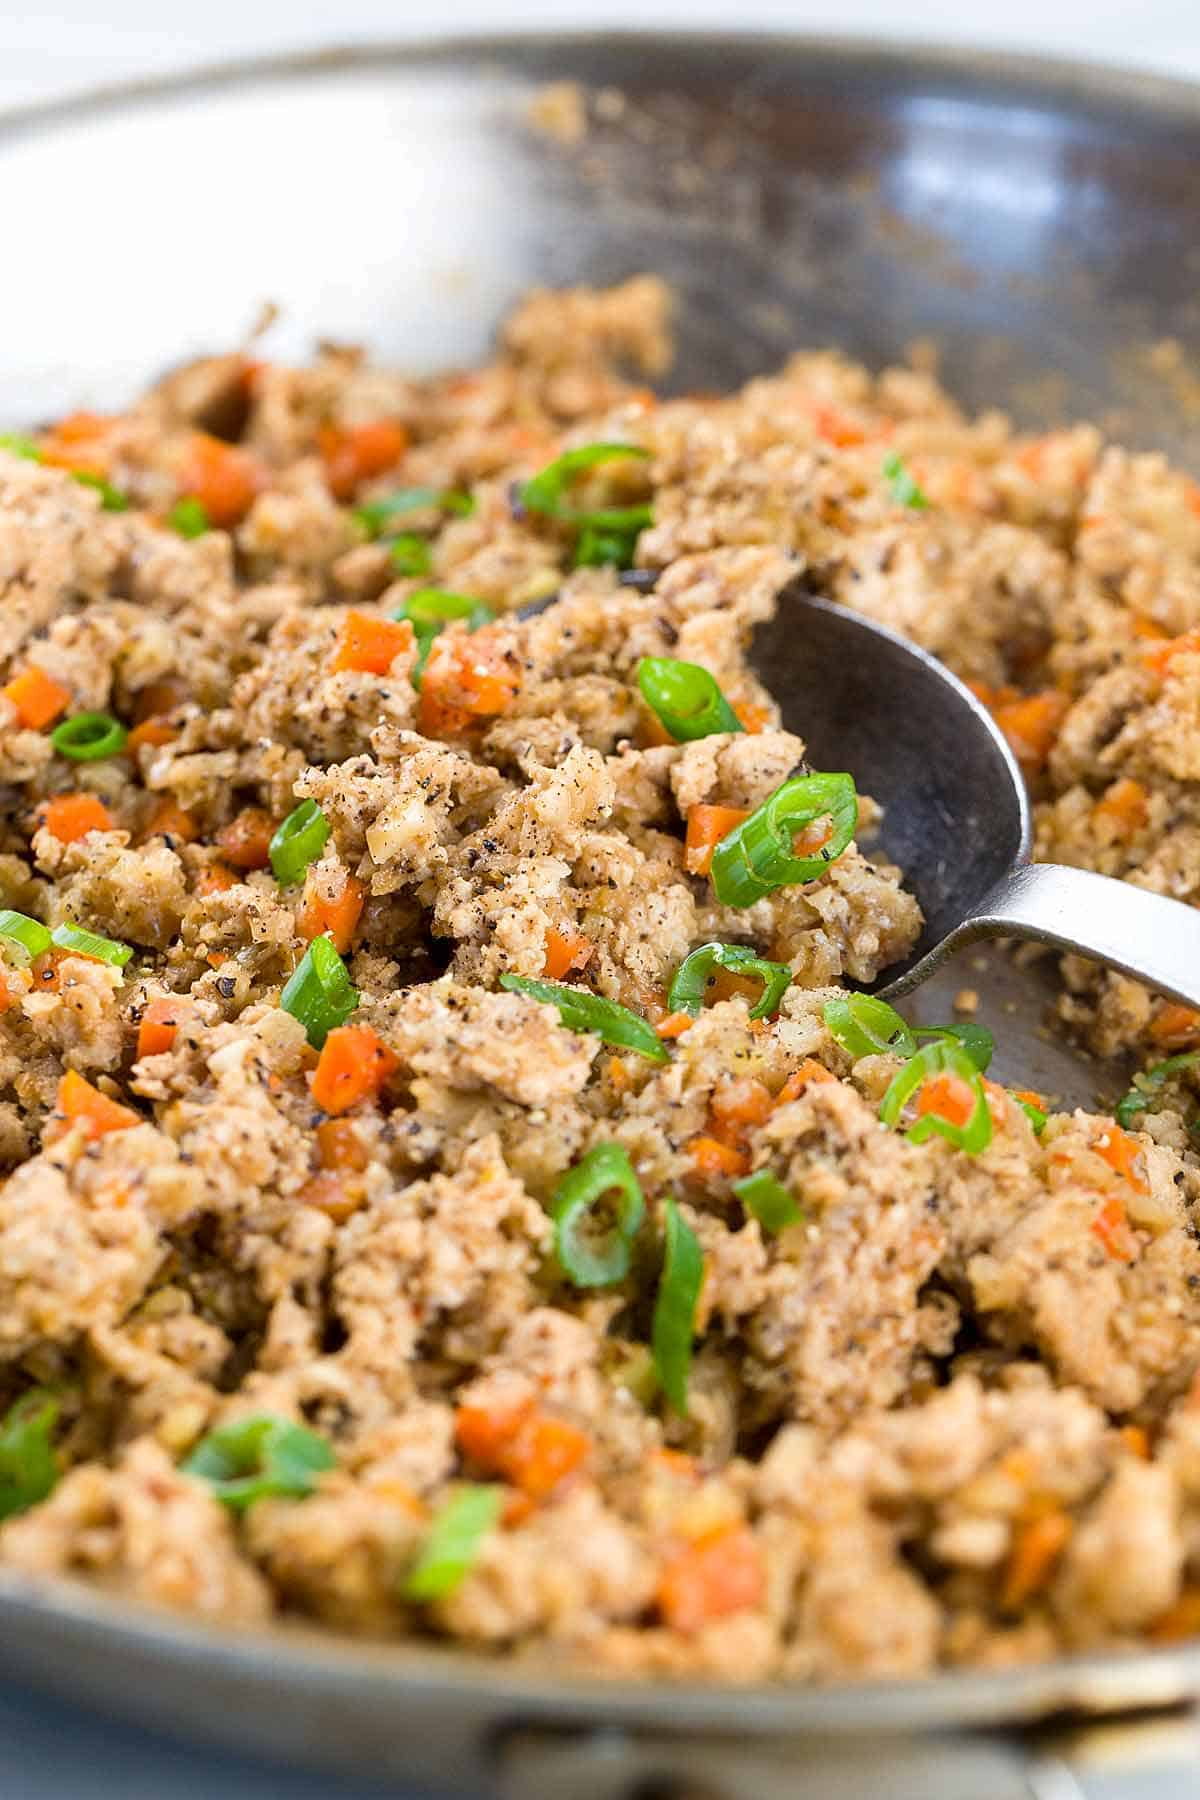 Chinese Lettuce Wraps With Ground Turkey - Here's a flavorful, fast and healthy meal made all in one wok! Turkey and fresh vegetables fill each wrap. | jessicagavin.com